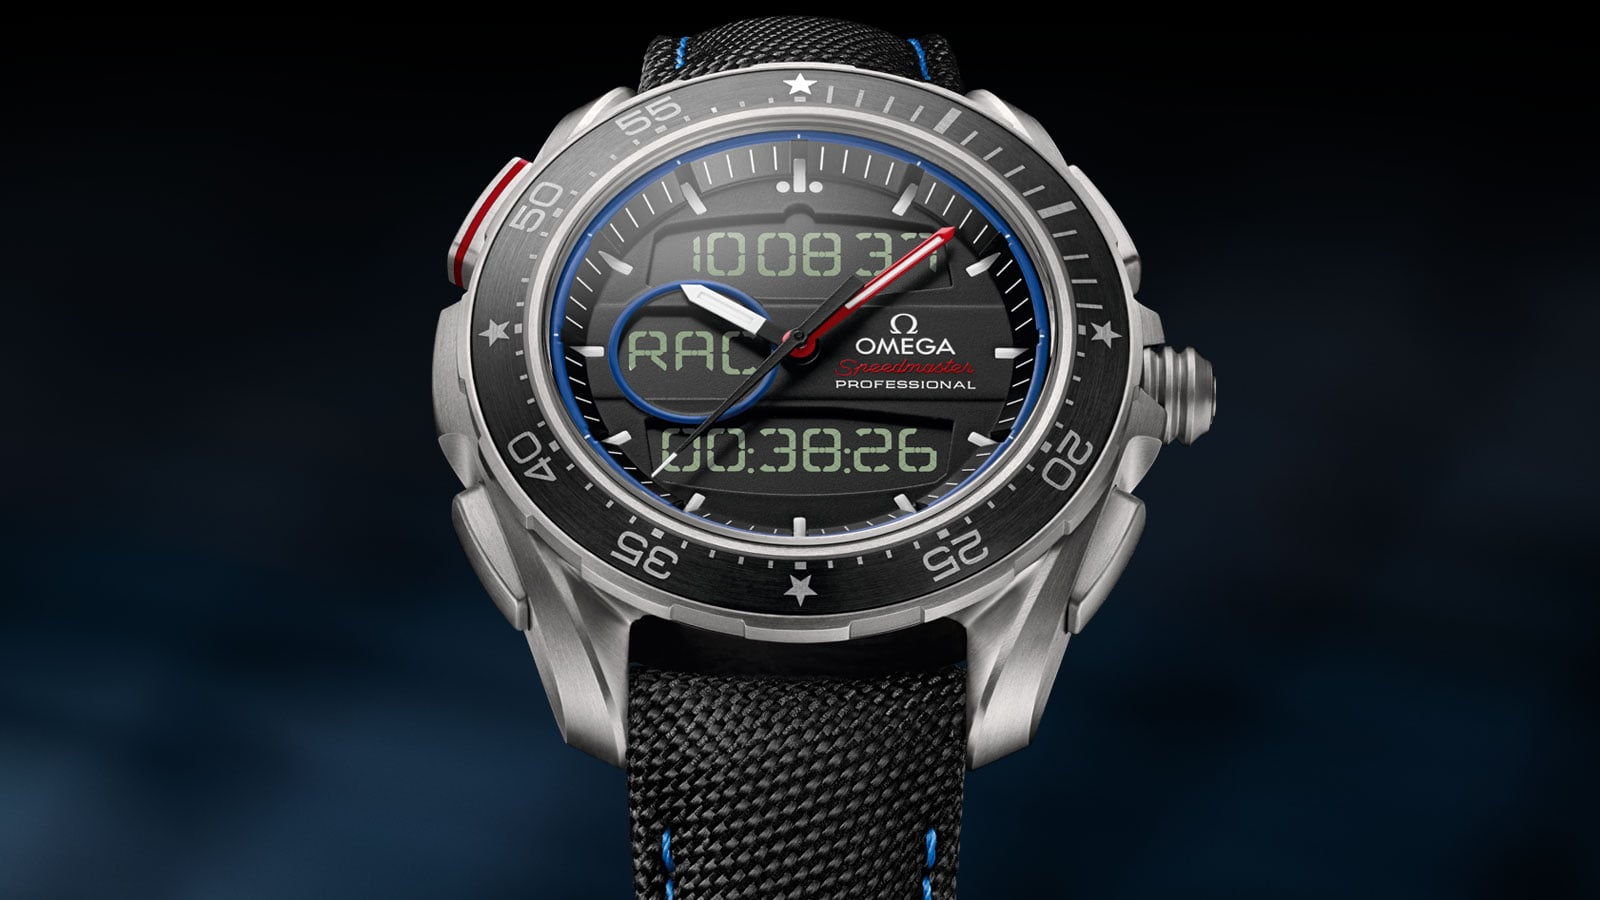 Front view of the Speedmaster X-33 Regatta watch with its titanium case